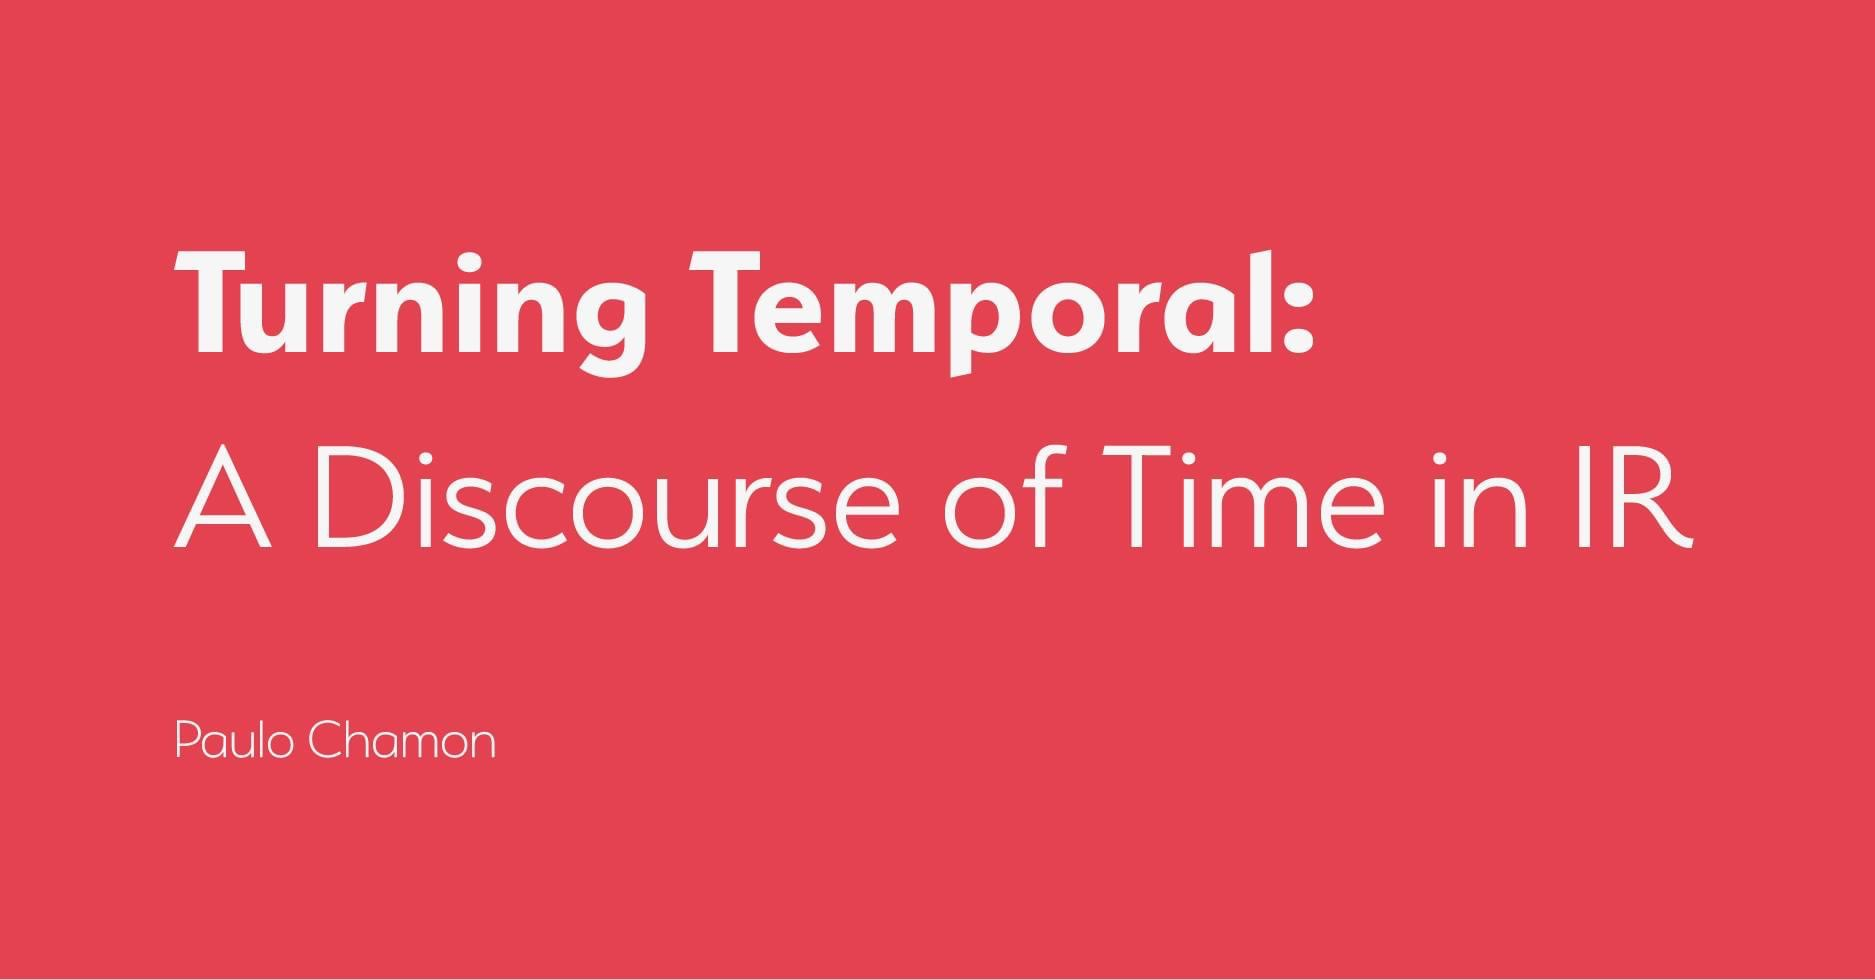 Turning Temporal: a Discourse of Time in IR